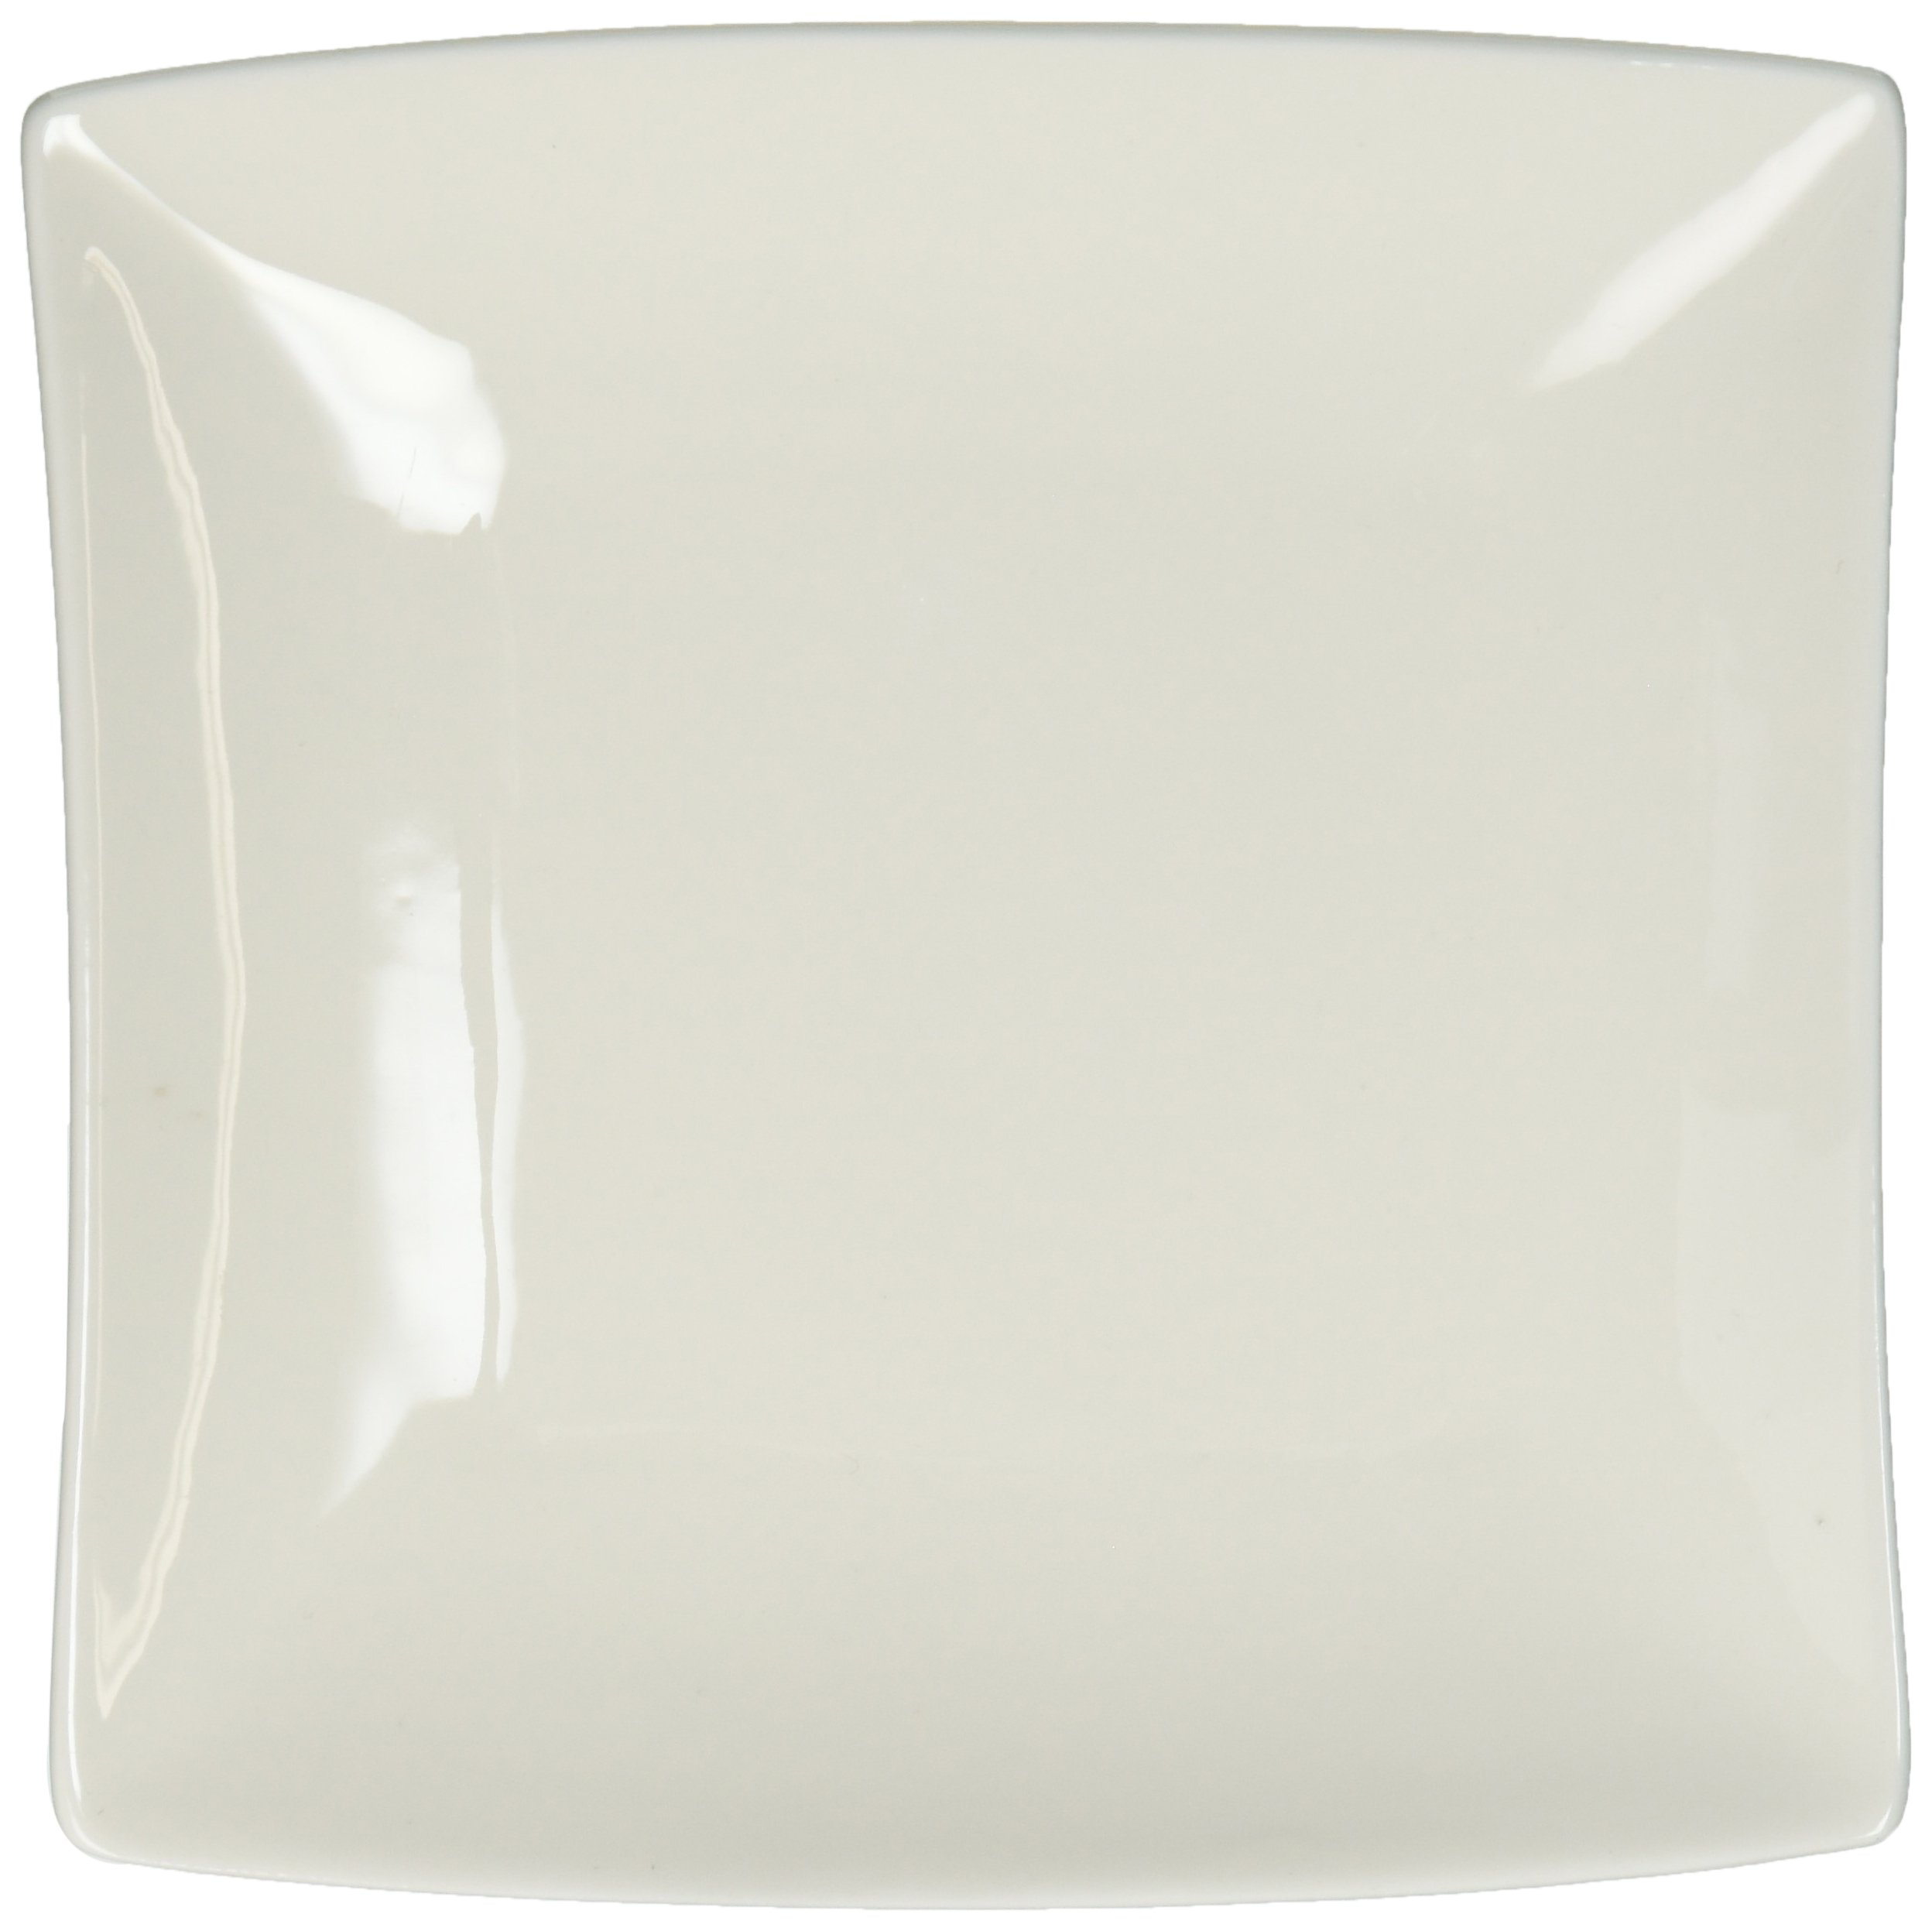 White Basics Collection, East Meets West Square Plate, 5.5'', White